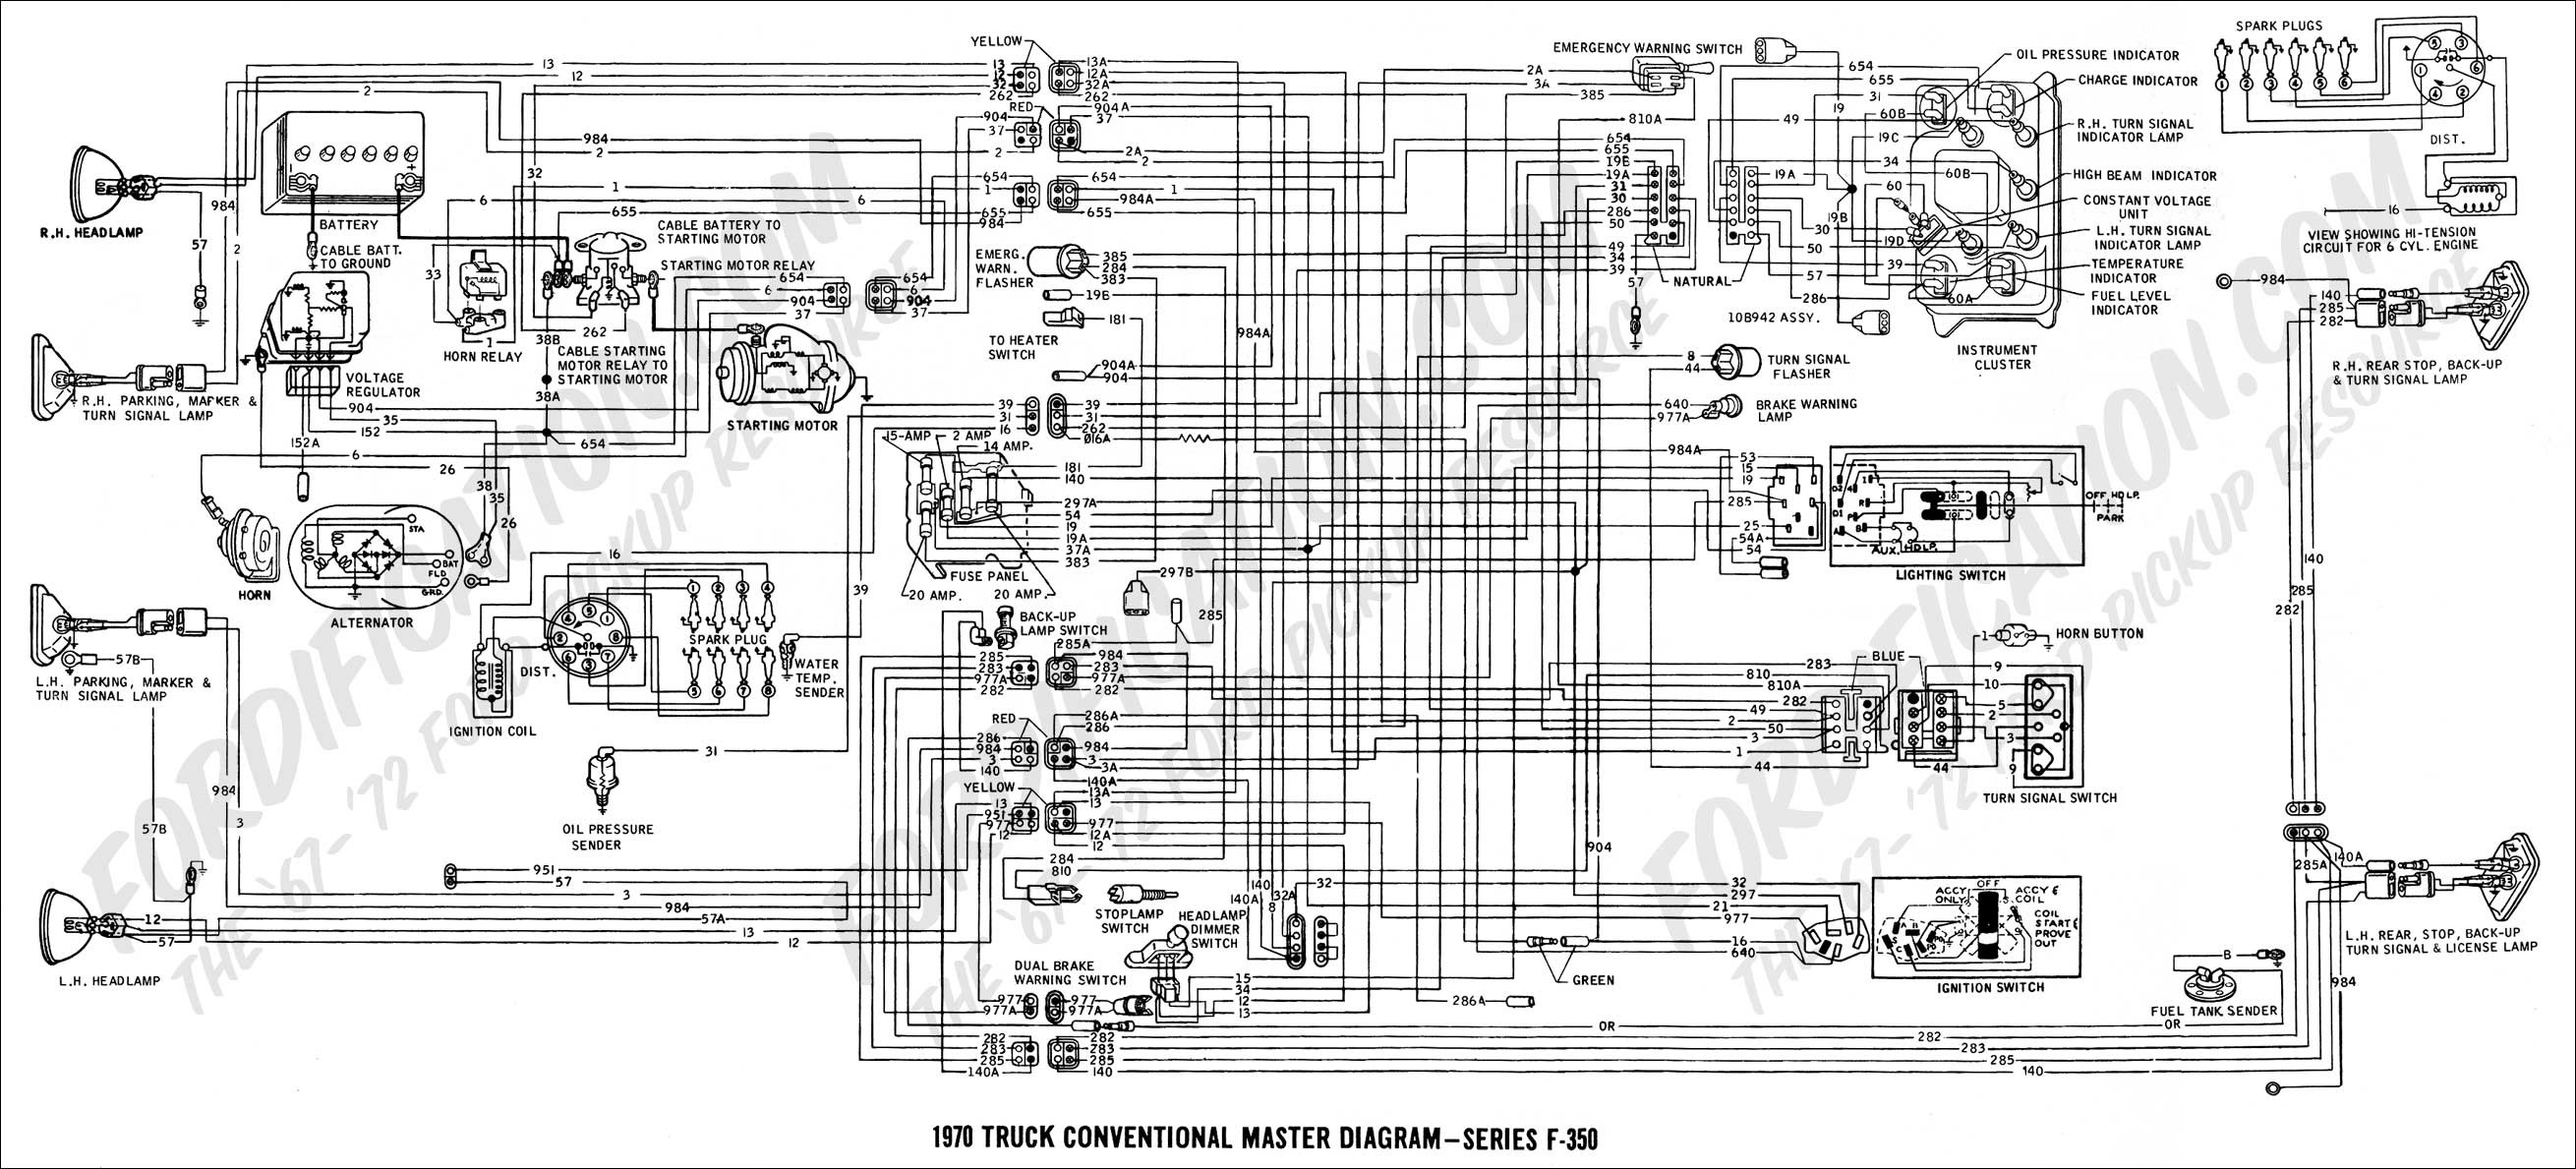 Ford Ka Engine Diagram ford Truck Technical Drawings and Schematics Section H Wiring Fair